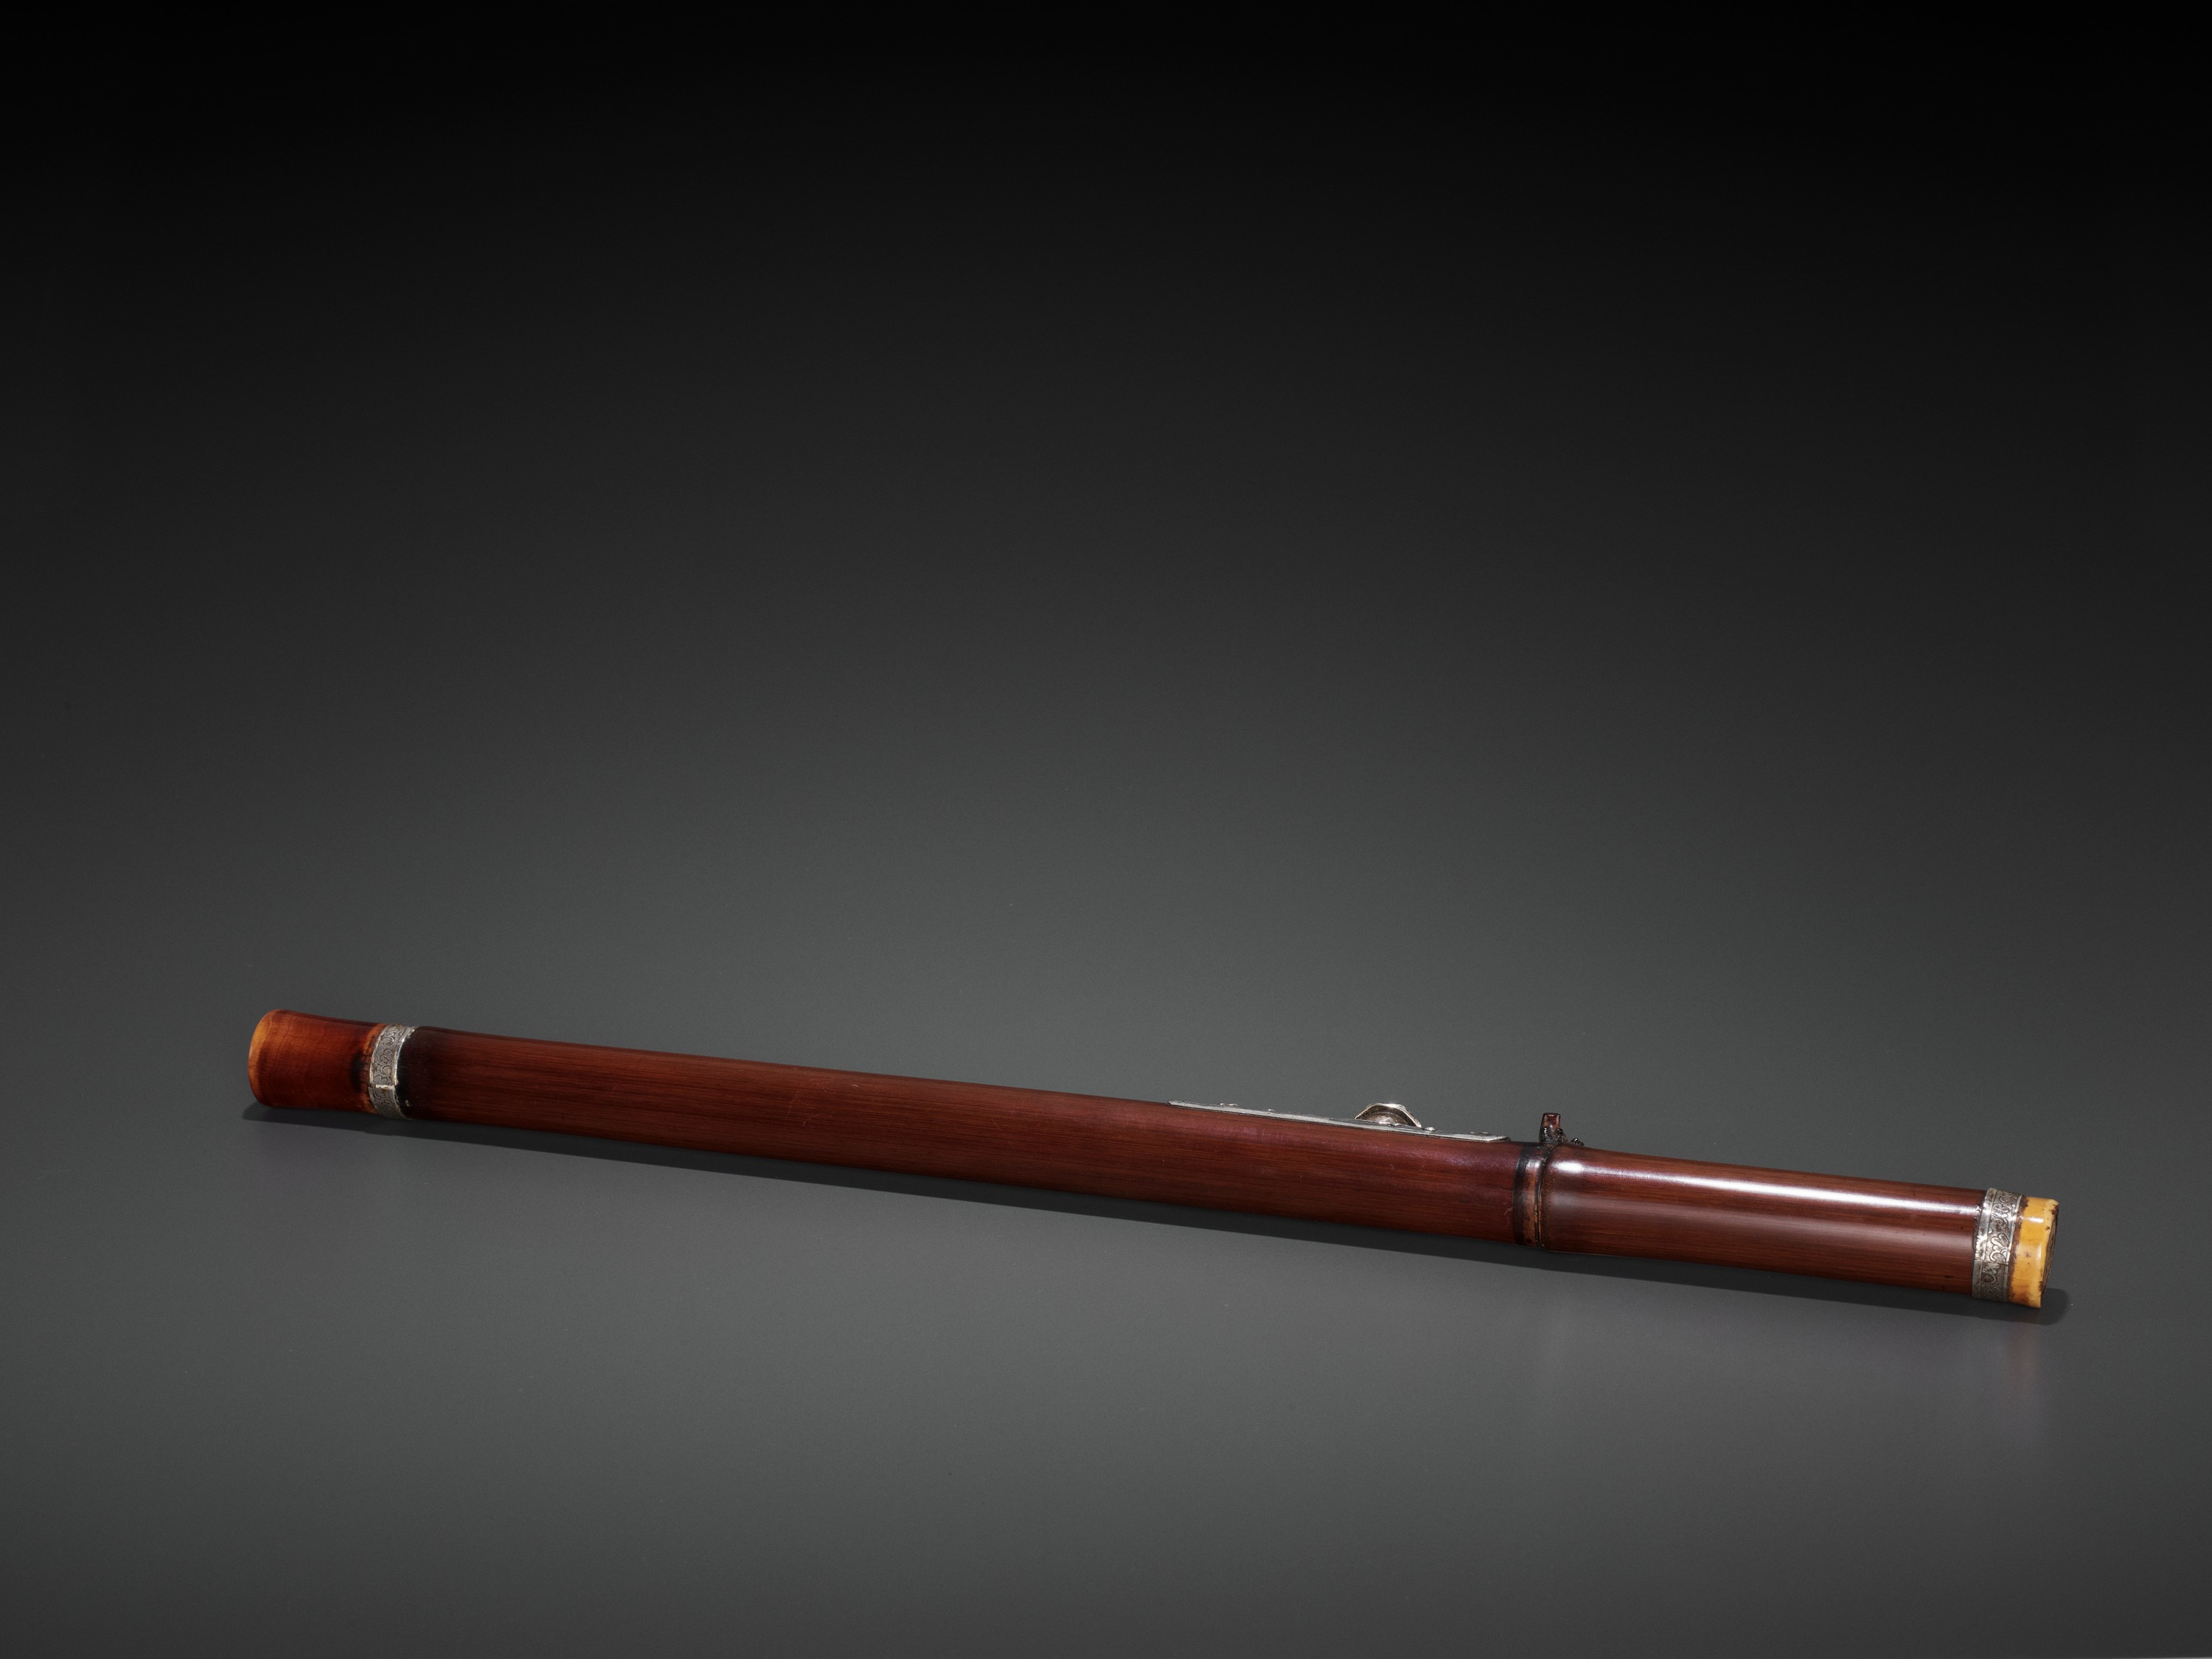 A BAMBOO OPIUM PIPE WITH IVORY, SILVER AND YIXING CERAMIC FITTINGS, LATE QING TO REPUBLIC - Image 5 of 9